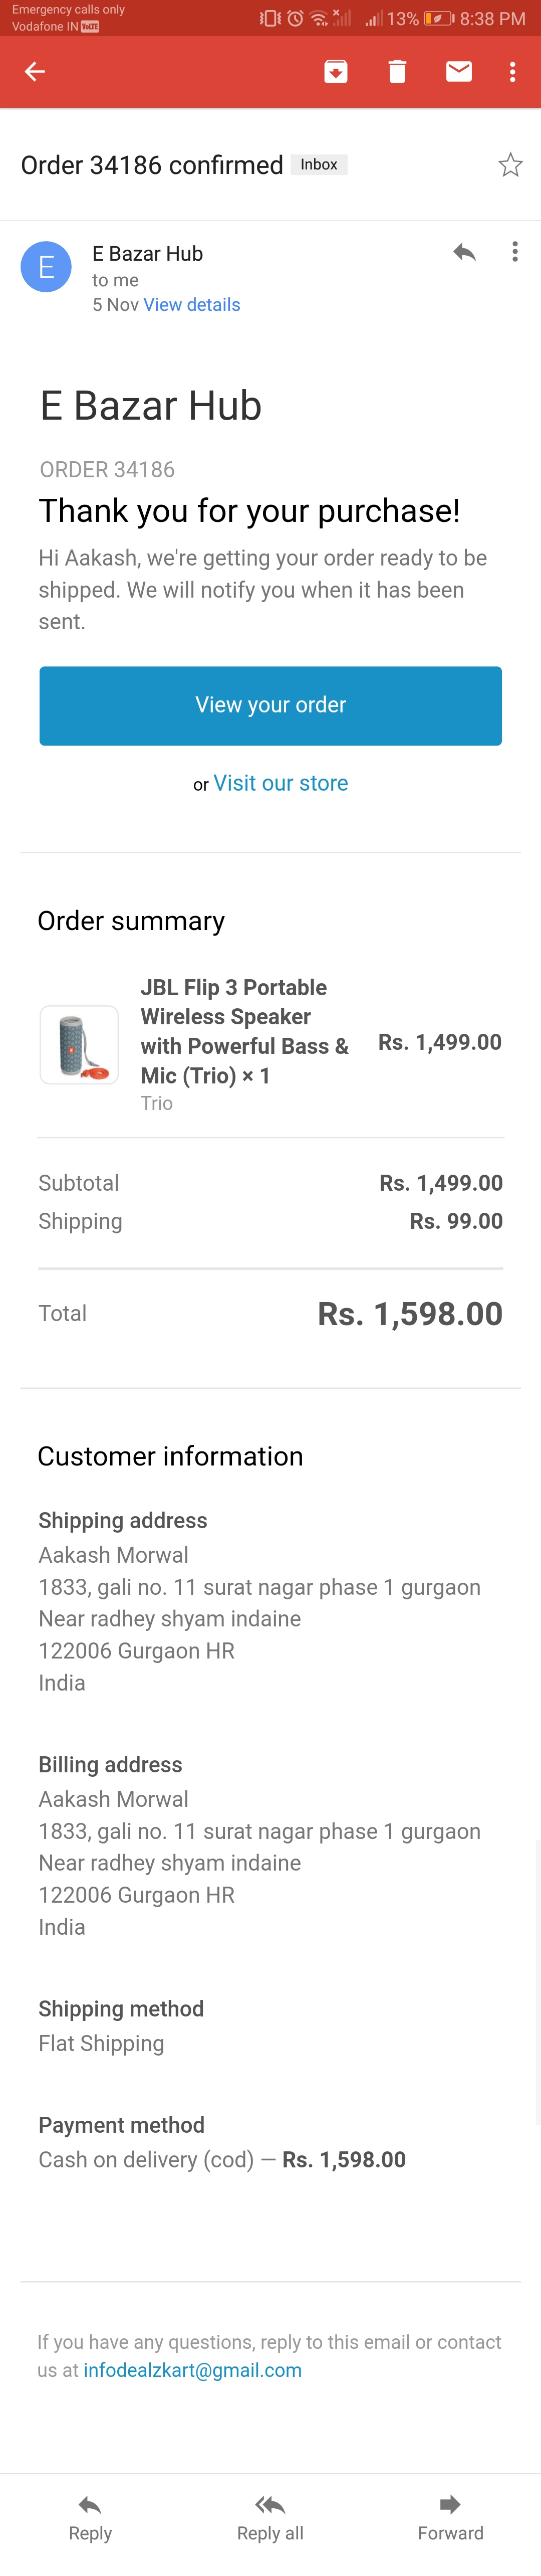 I was orderd Jbl flip 3 speaker. But you  send me a duplicate item. So i am not satisfied i want req